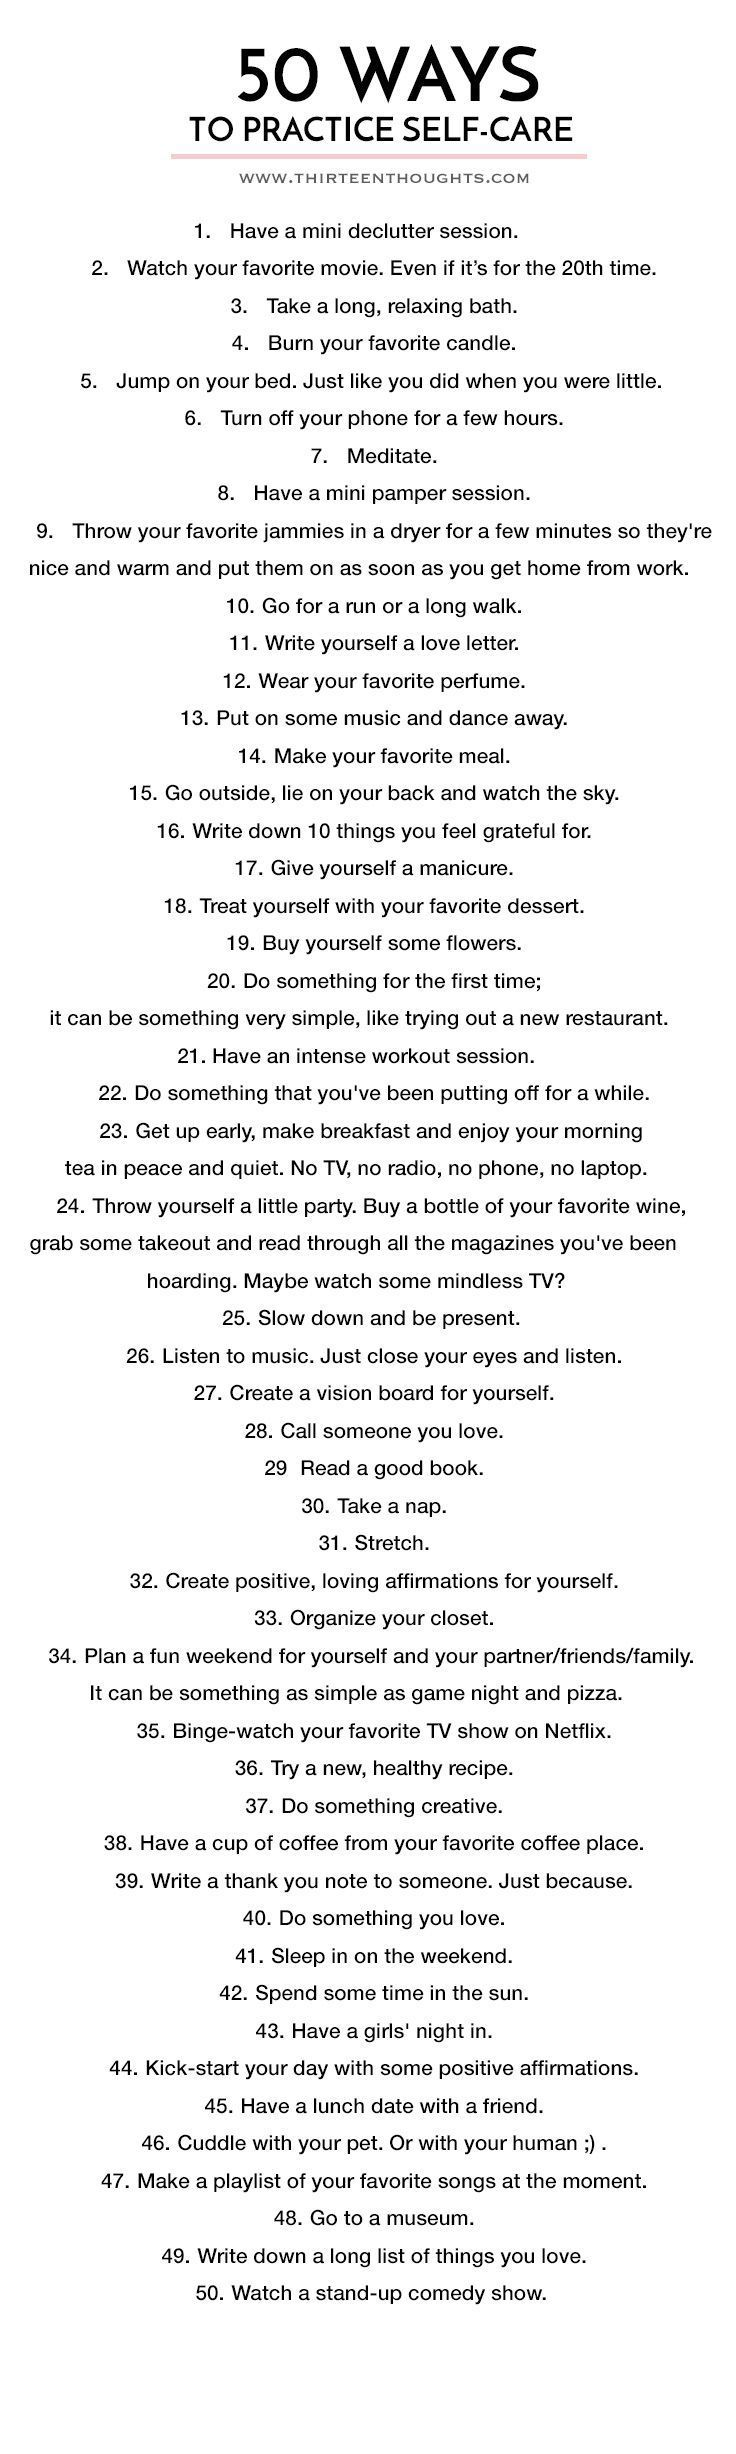 50 Ways To Practice Self-Care + Free Printable List | Things to